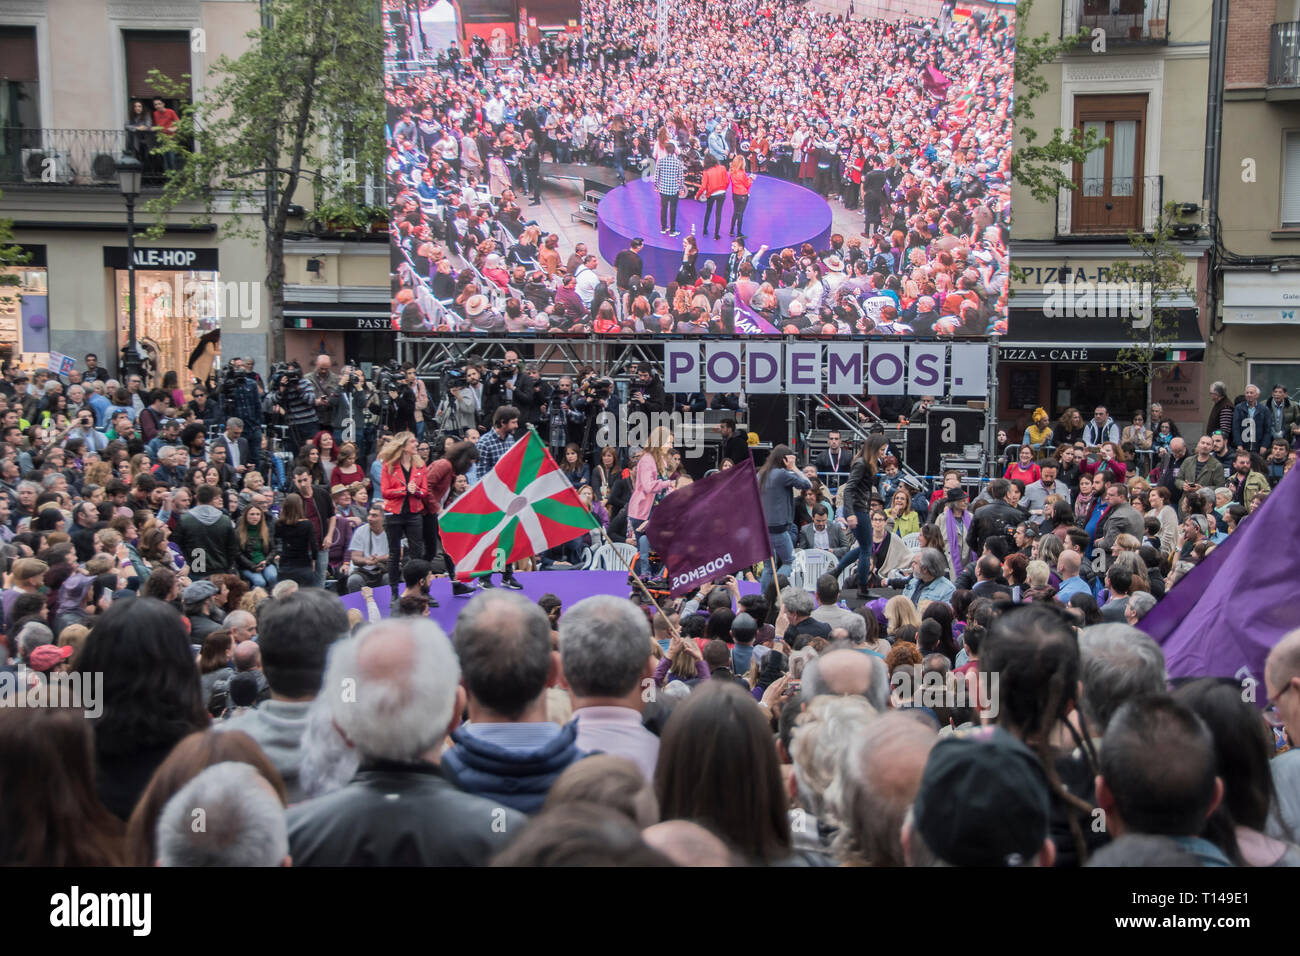 Madrid, Spain, 23rd March, 2019. people in the presentation of the return of paternity permission of Pablo Iglesias.  pre-campaign of the united left party unidas podemos, for the five weeks of the campaign until April 28. Pablo Iglesias reappears in the public scene three months of his retirement to enjoy the paternity leave. the left party has chosen one of the most emblematic places for them the political space the square attached to the reina sofia de madrid museum. Credit: Alberto Sibaja Ramírez/Alamy Live News - Stock Image